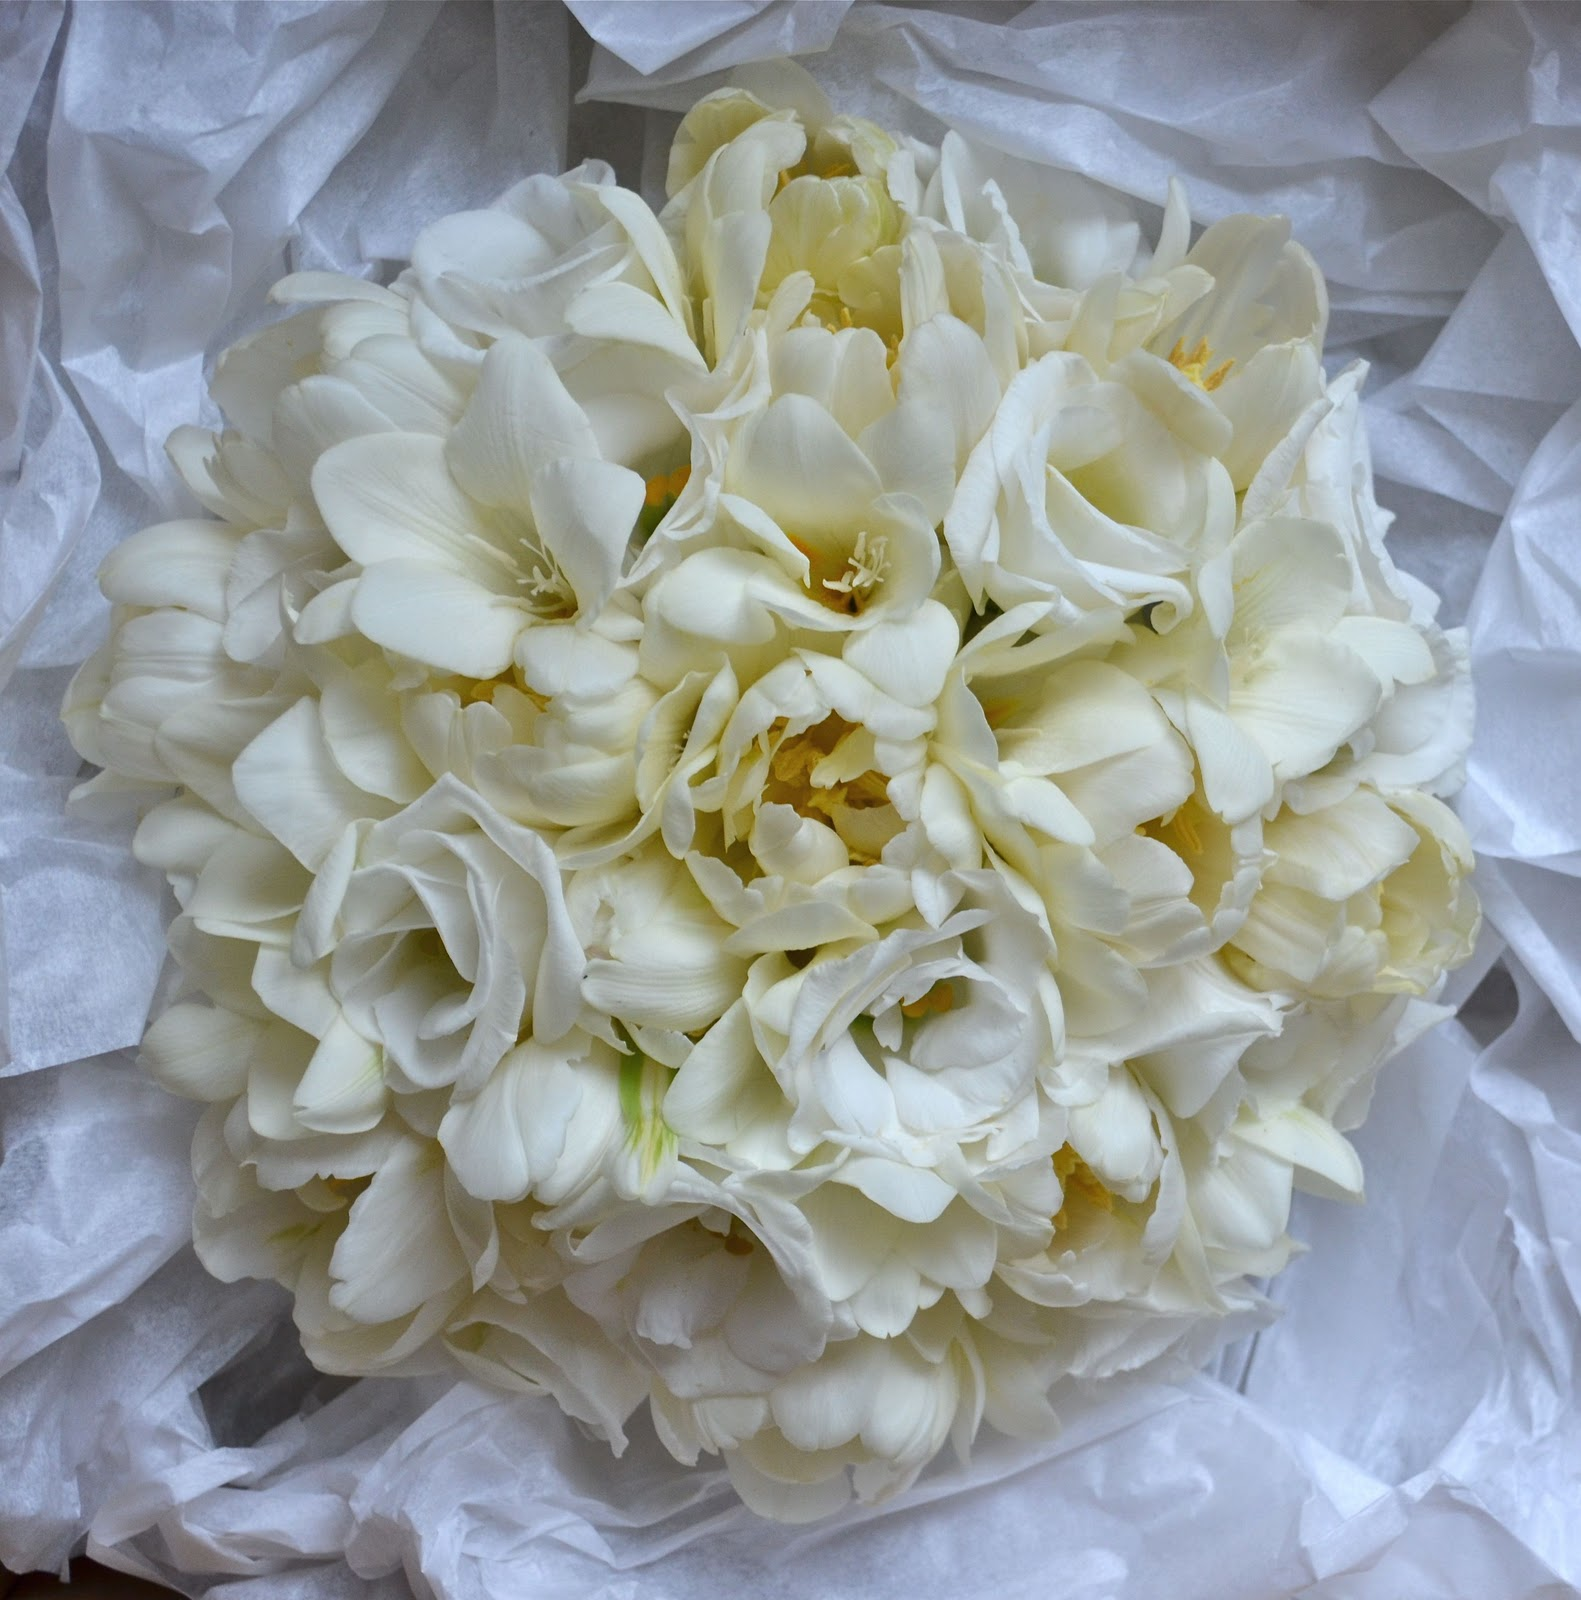 Wedding flowers blog pamelas winter white wedding flowers tithe barn winter white bouquet of double tulips freesias and lisianthus with all the freesias it smelt gorgeous too pamela was keen to avoid roses and wanted to mightylinksfo